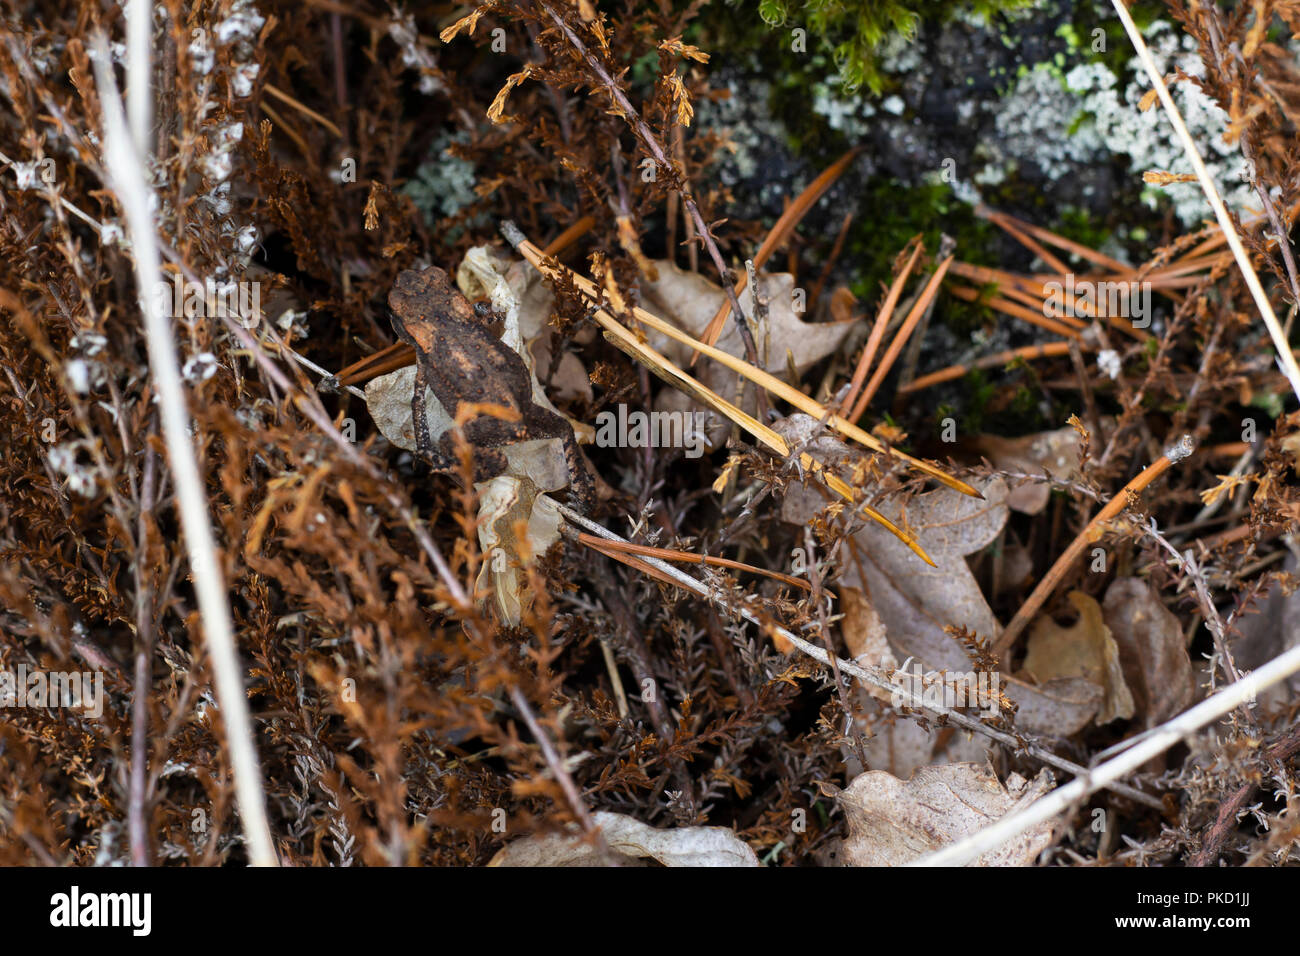 Common frog camouflaged by similar colored forest ground. - Stock Image